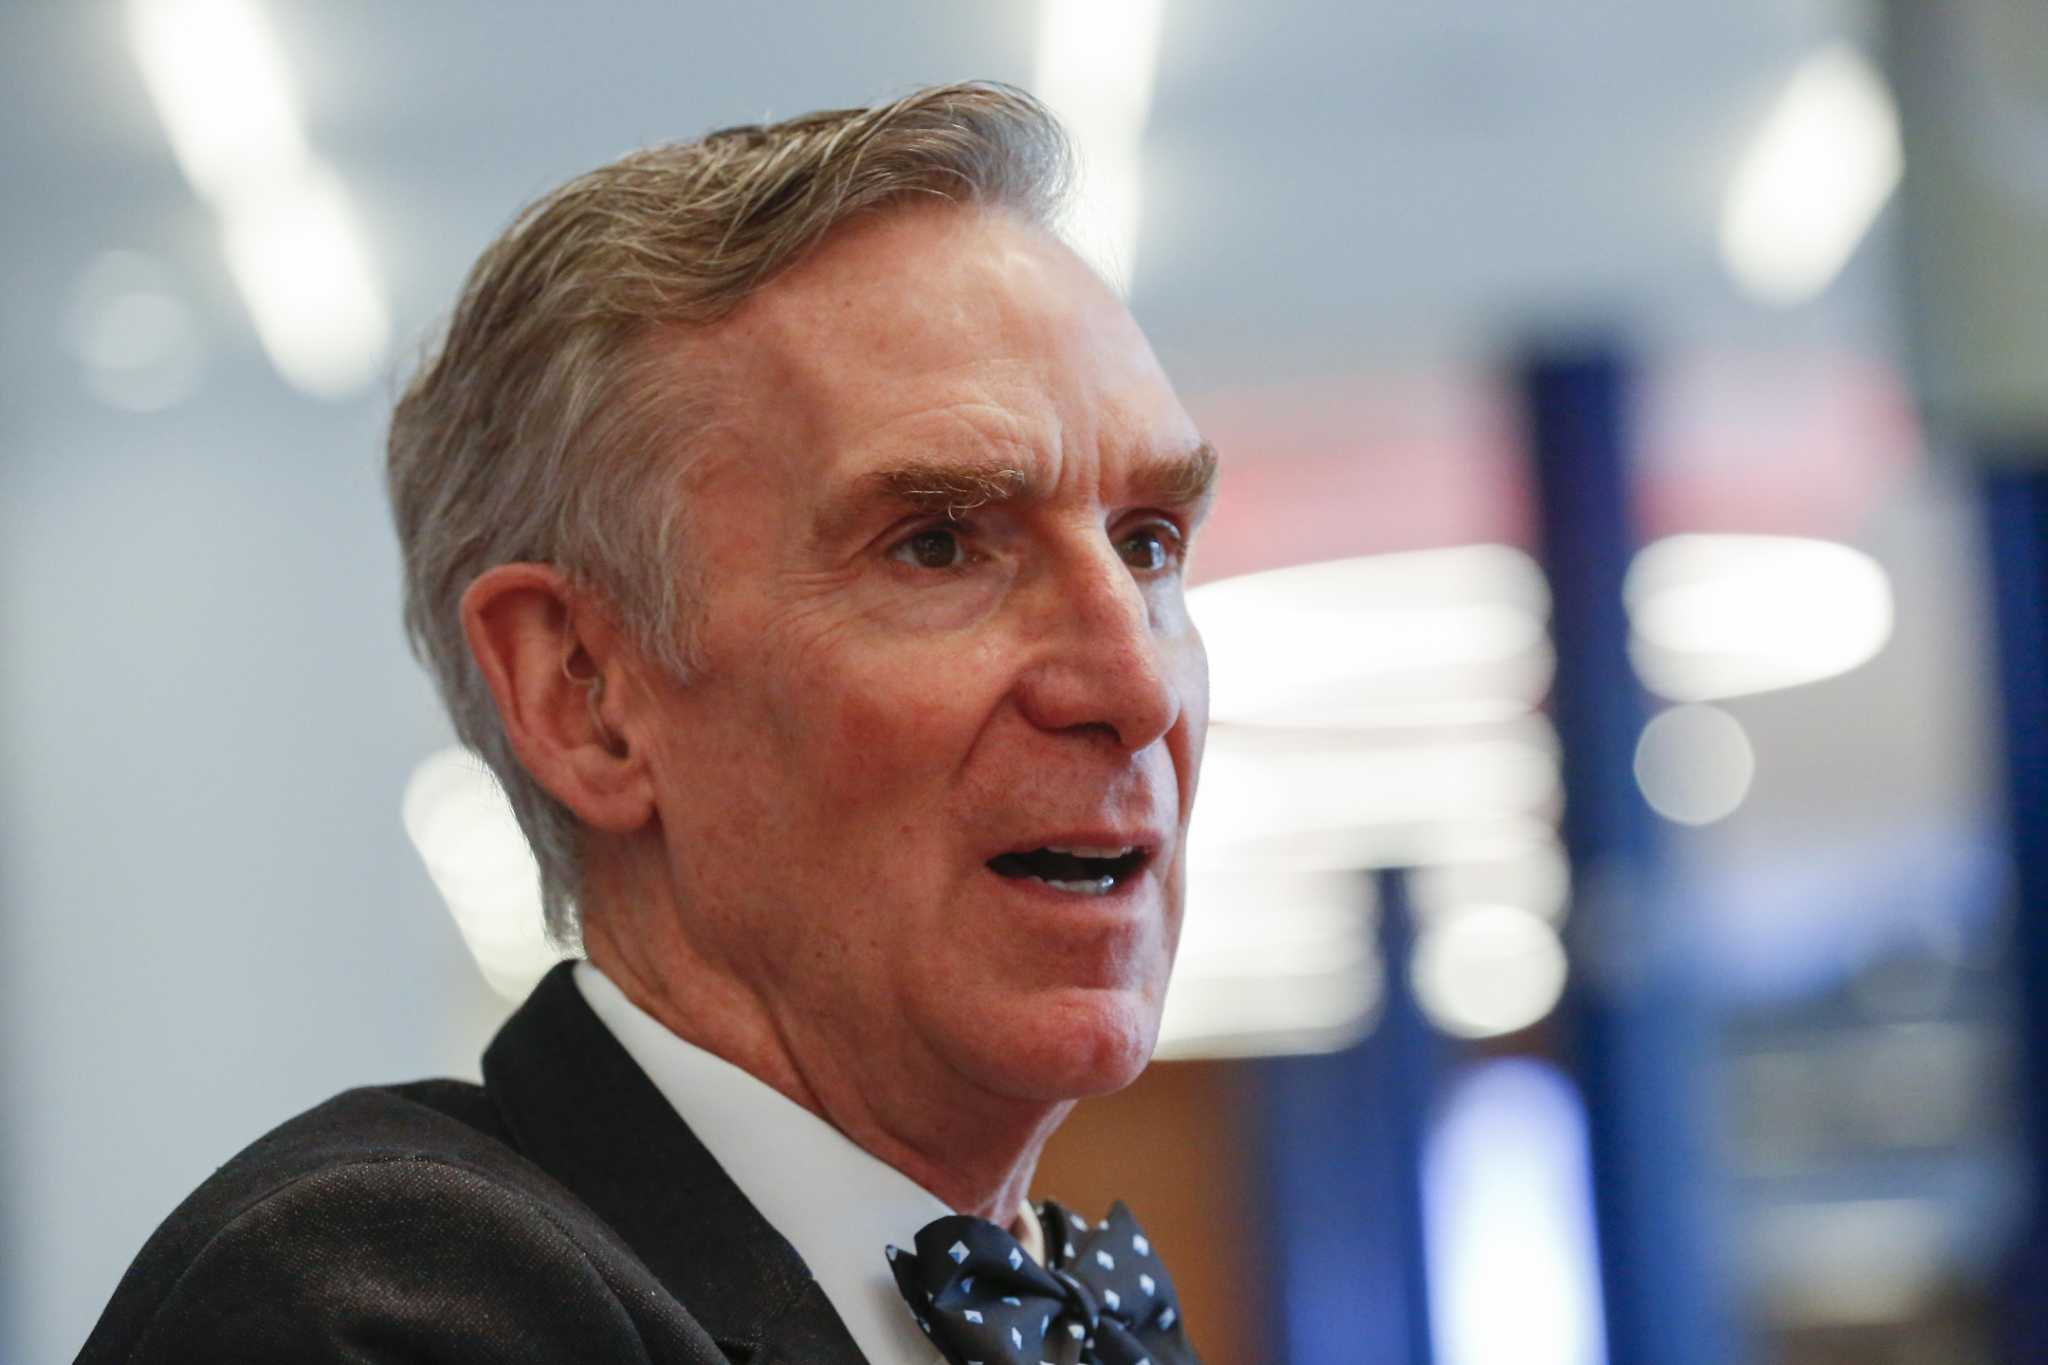 Science Guy Bill Nye pitches space sailing, exploration in Houston